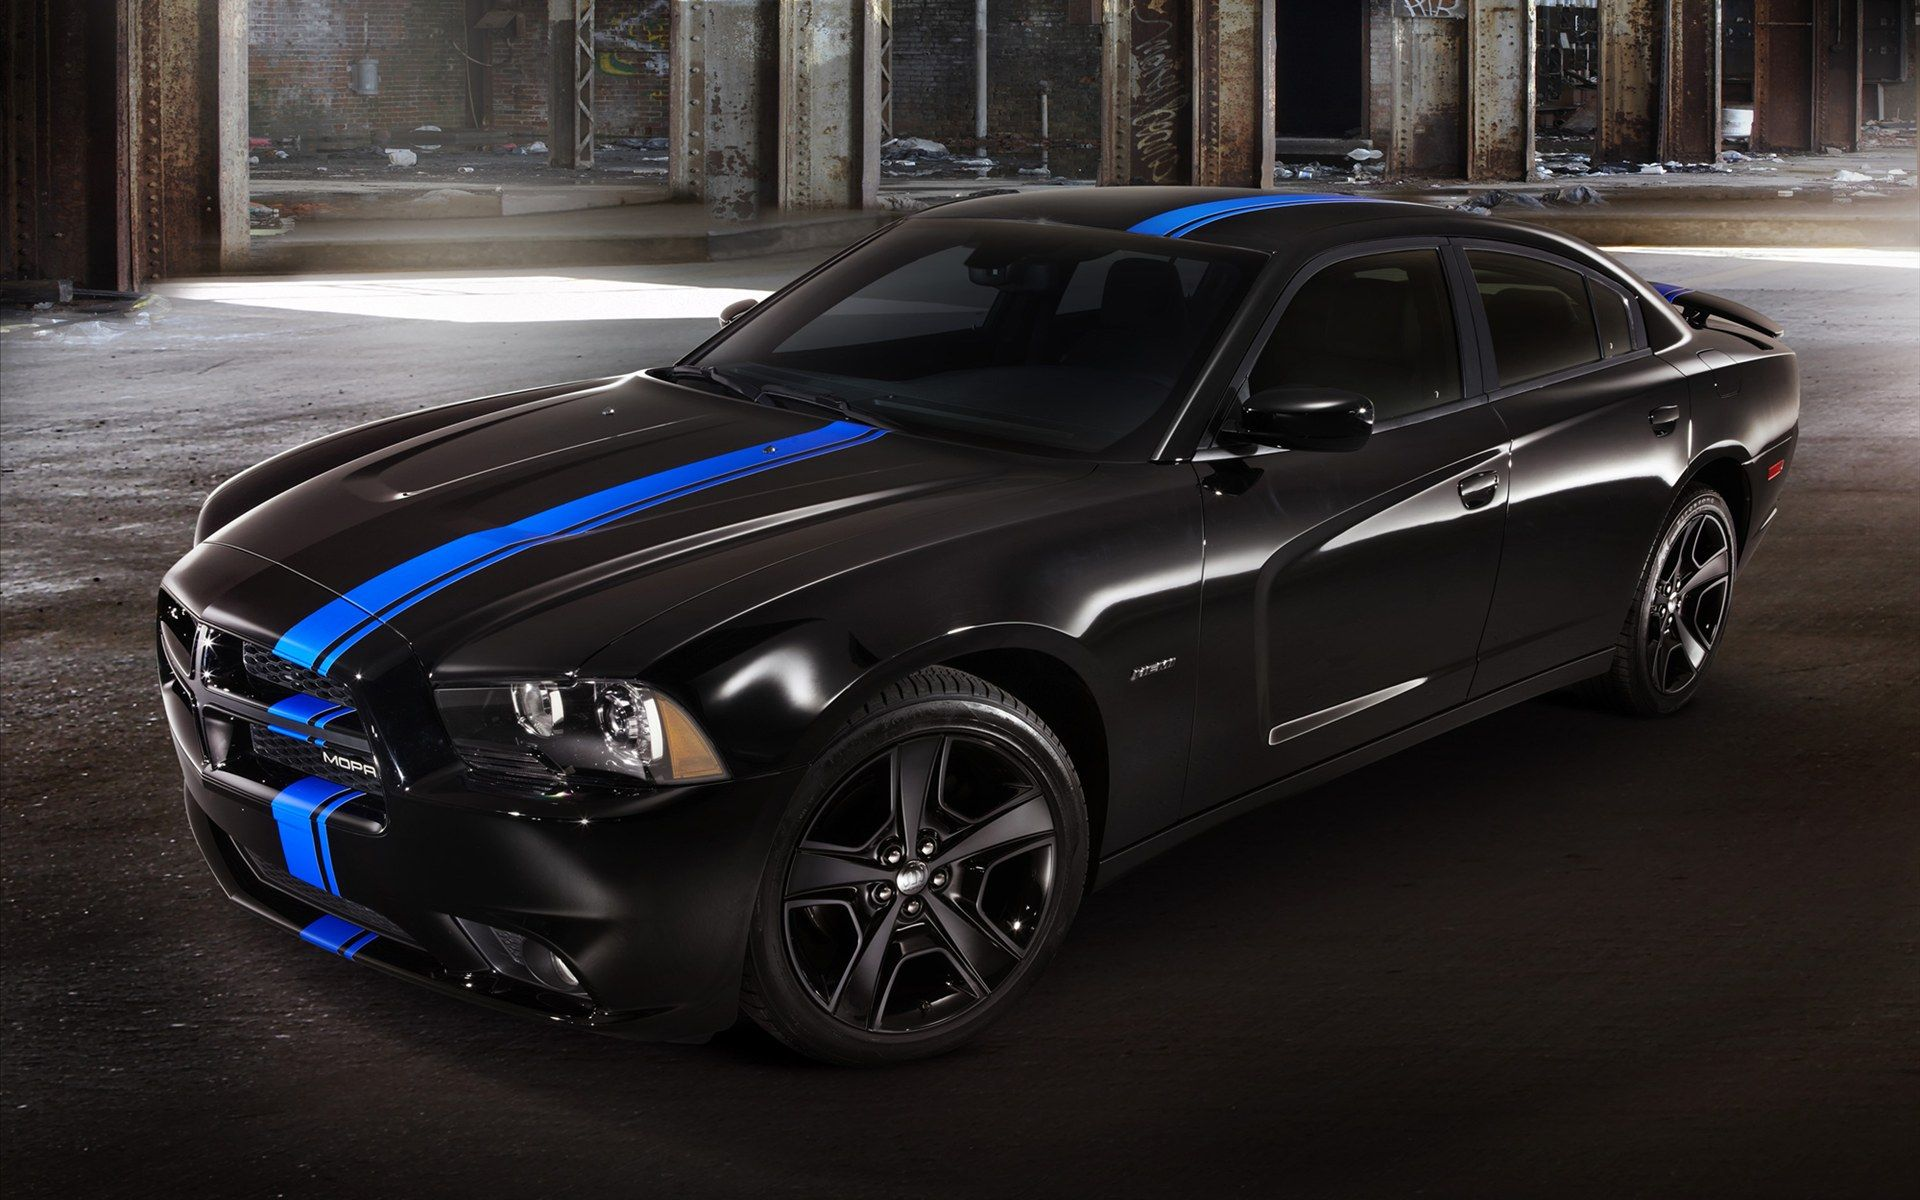 Dodge Wallpaper Hd Cyn Black Dodge Charger Dodge Charger Rt